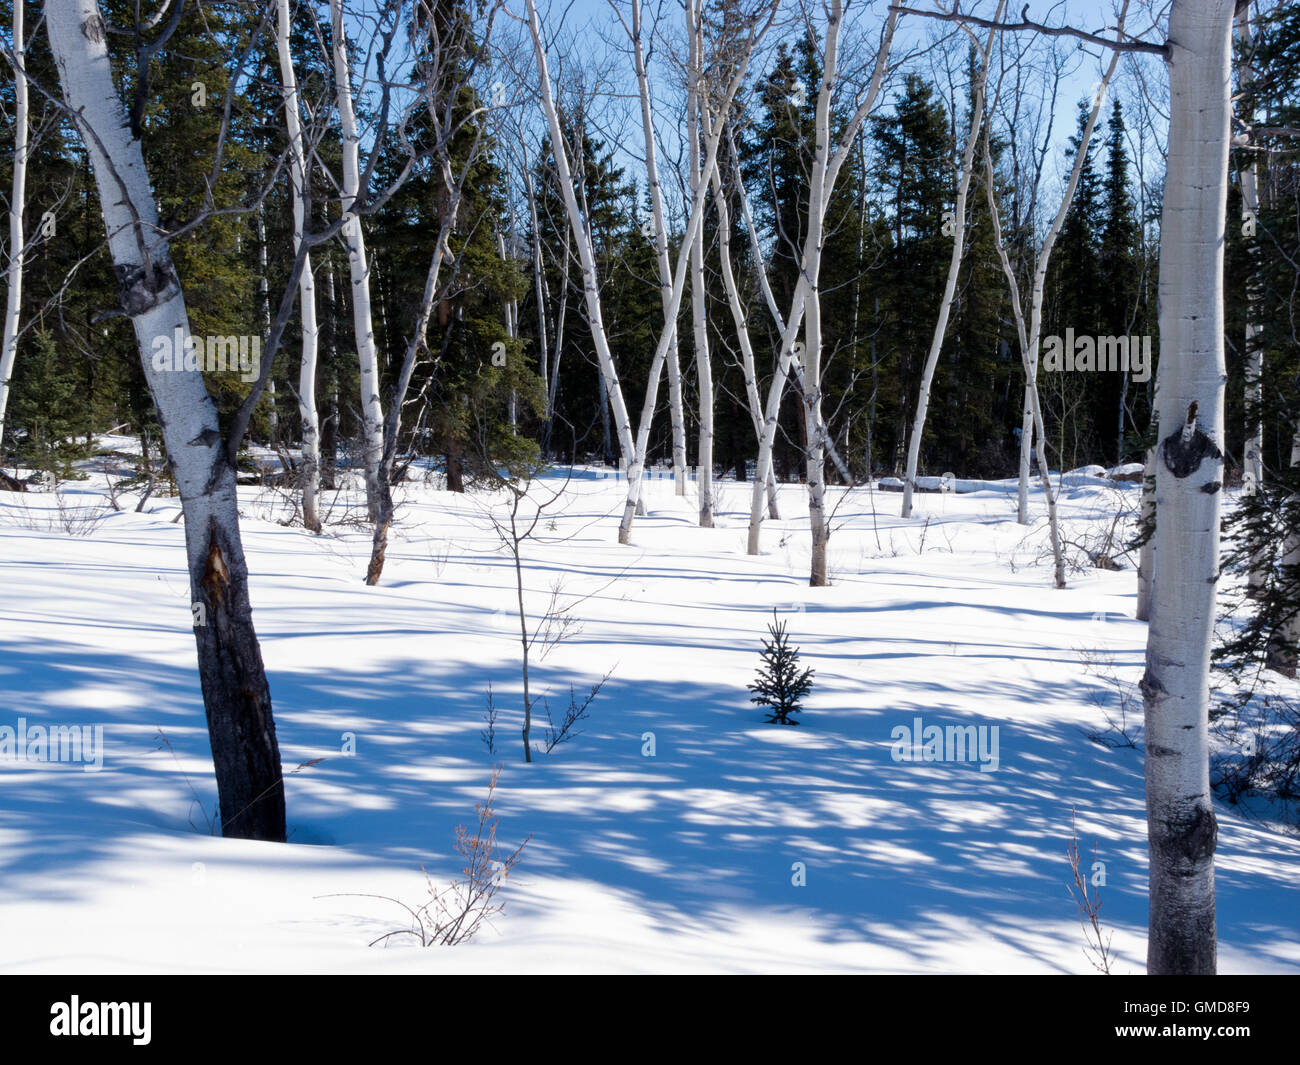 Aspen trees groove in winter boreal forest taiga - Stock Image